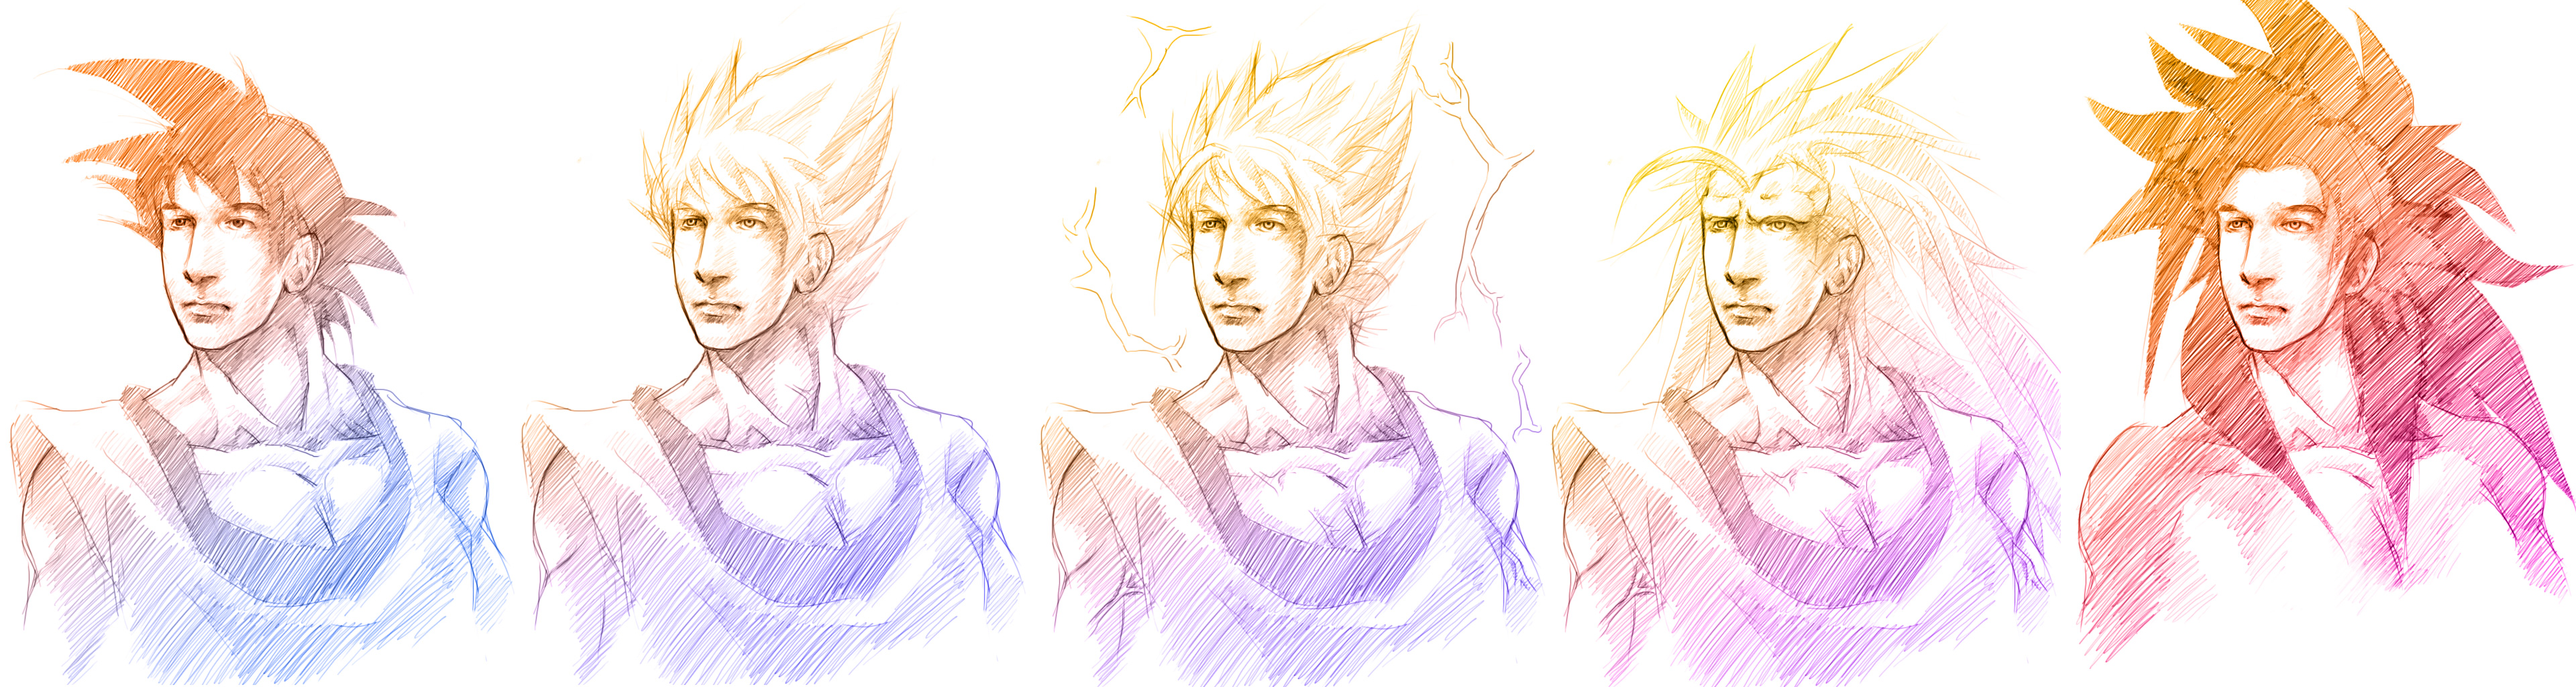 The Many Forms of Goku by AngelusMortis